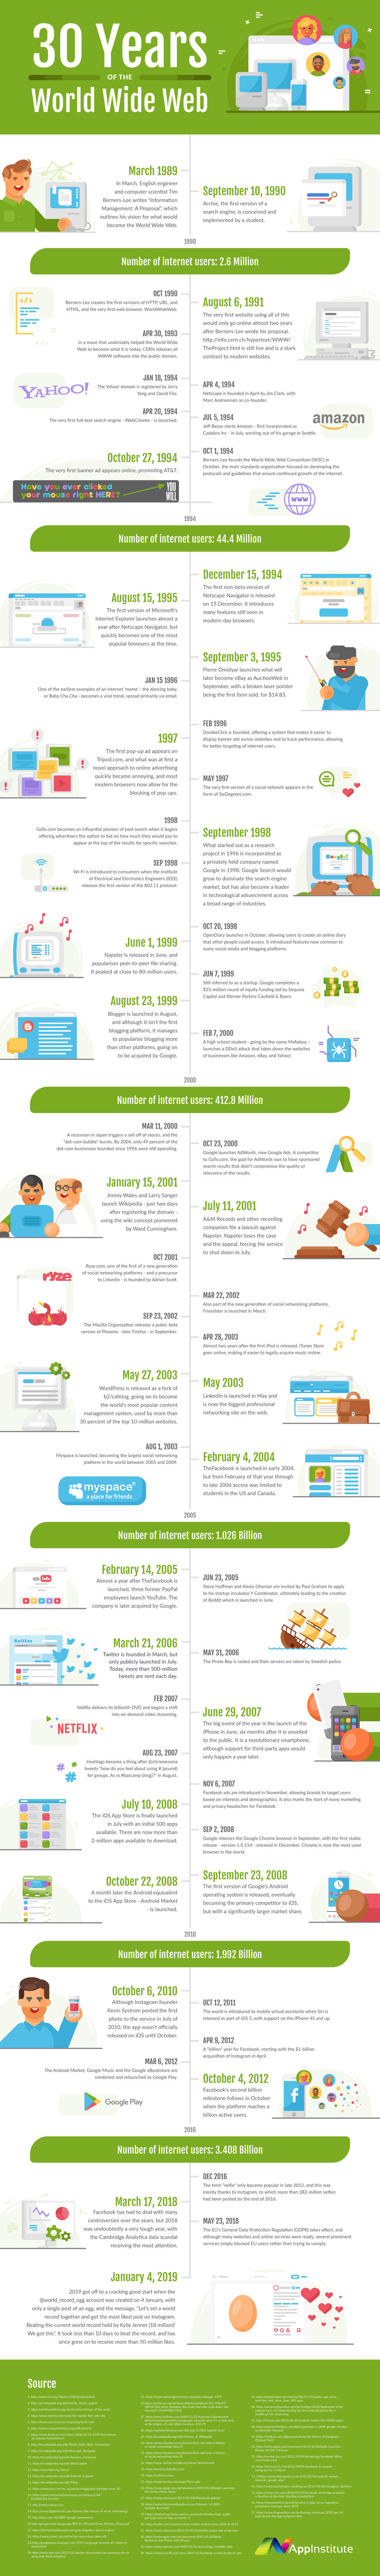 AppInstitute-30yearsofwww-infographic